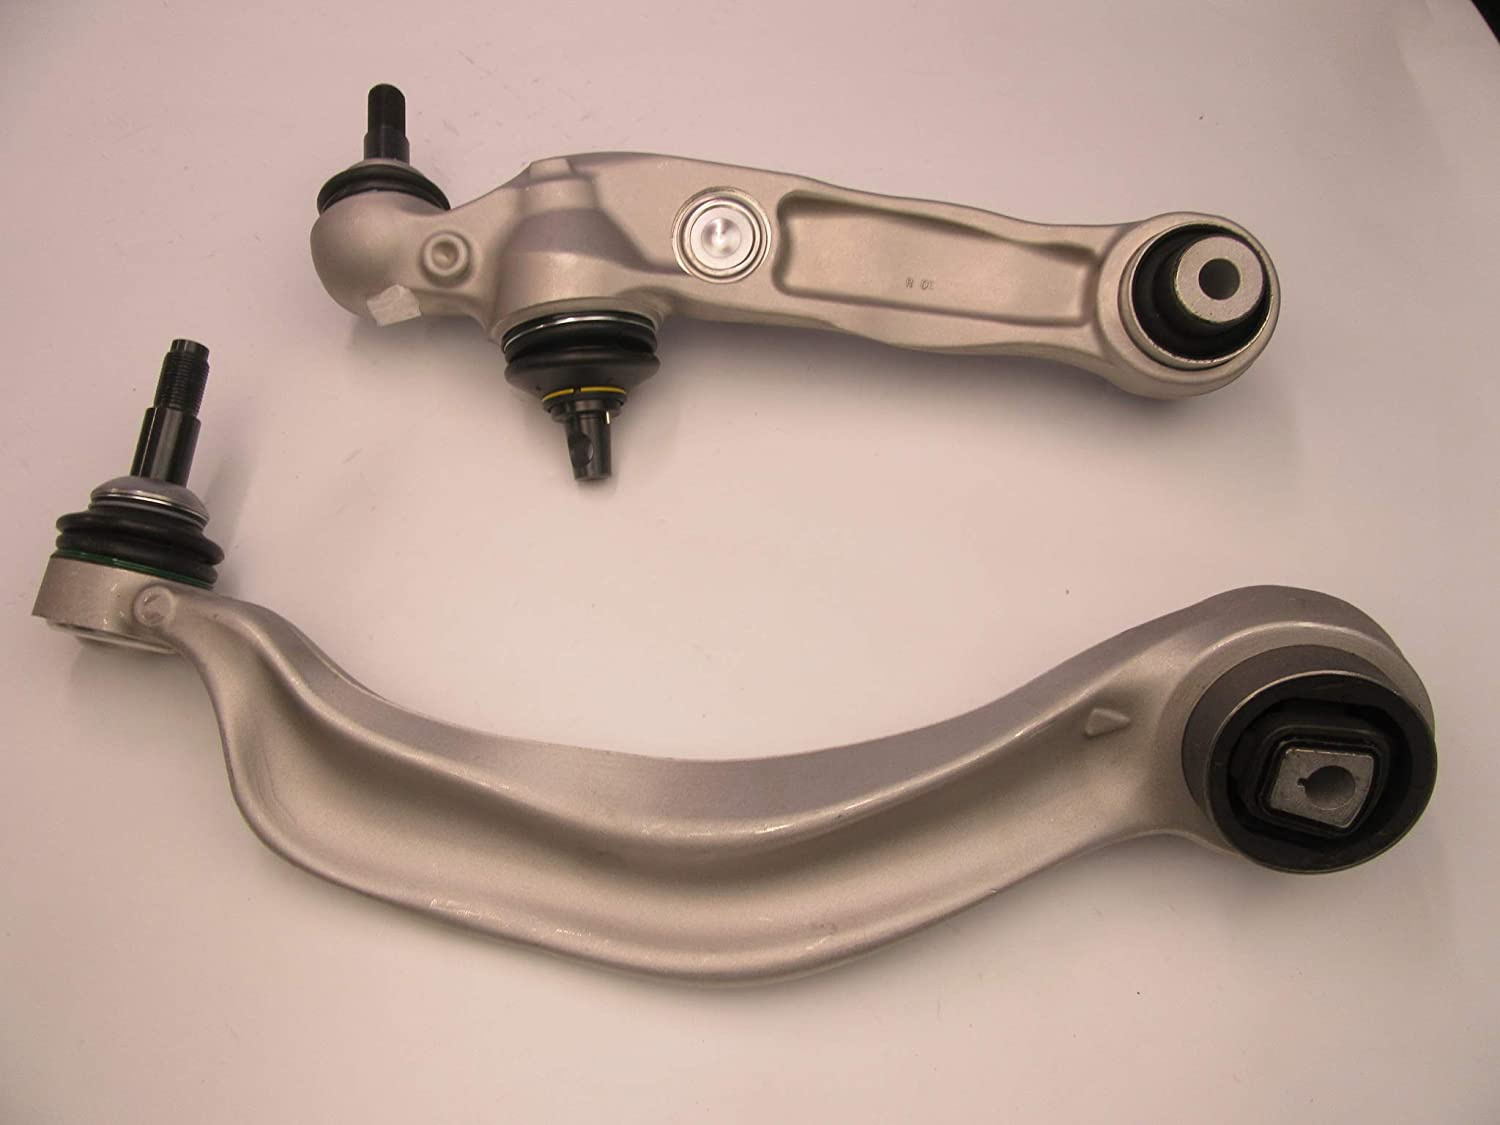 Rolls Royce Ghost Dawn Wraith lower Be super welcome Max 69% OFF right s wishbone arm control